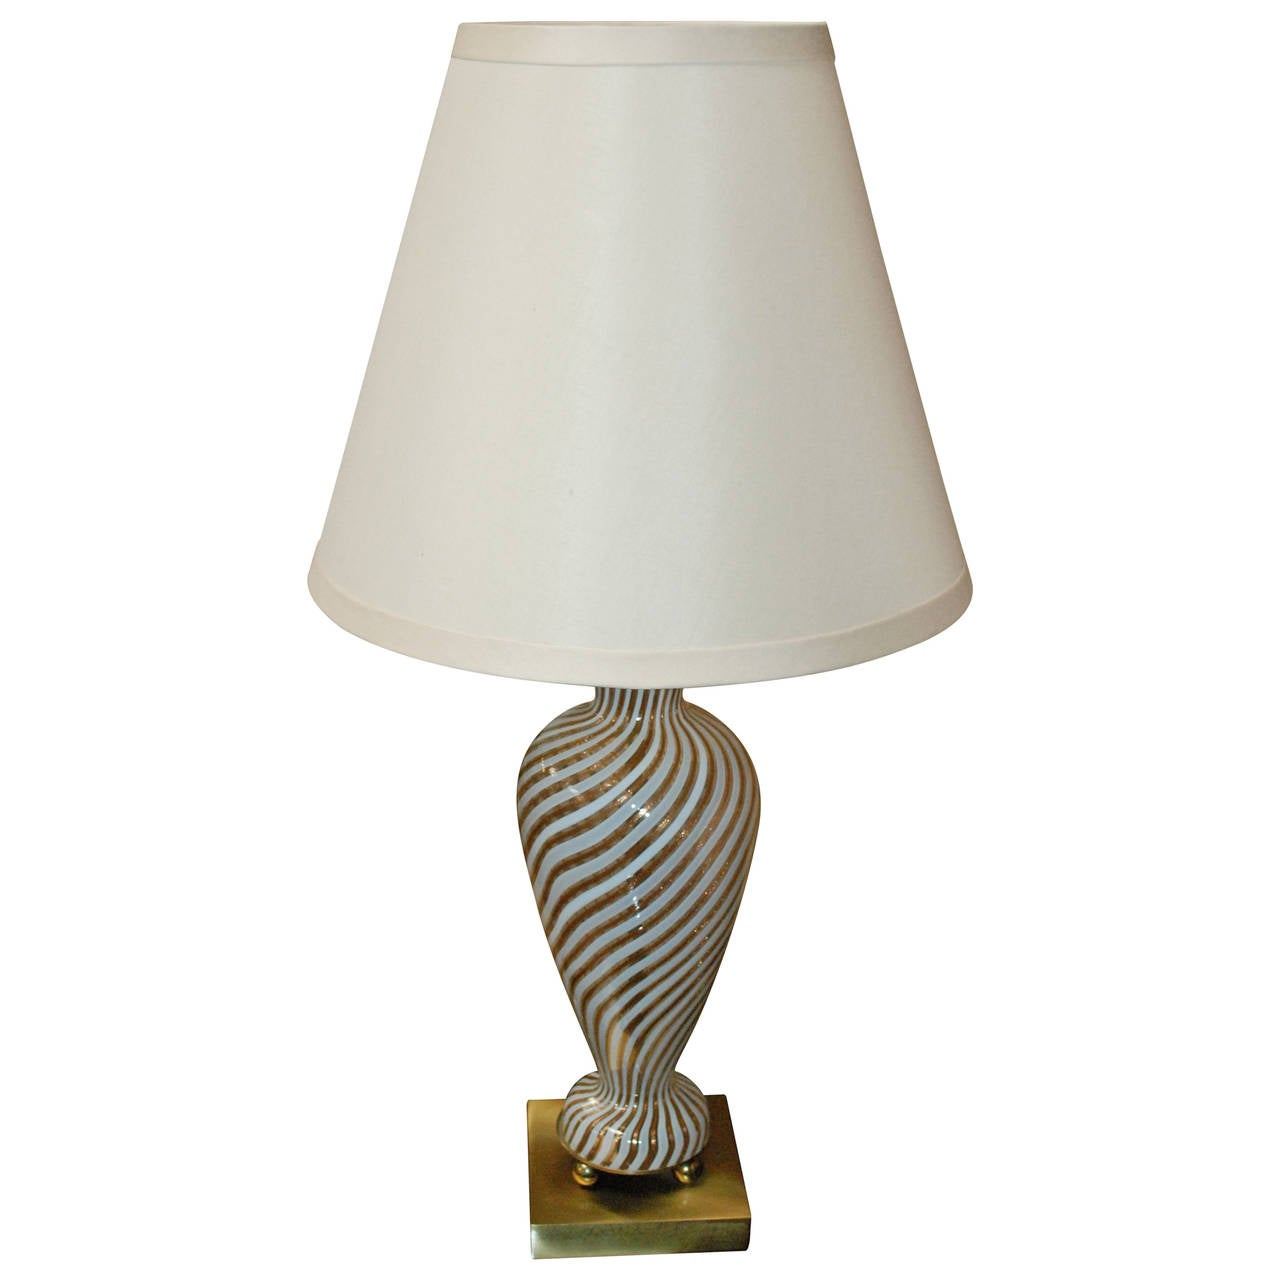 Murano Vintage Lamp With White And Gold Swirls At 1stdibs